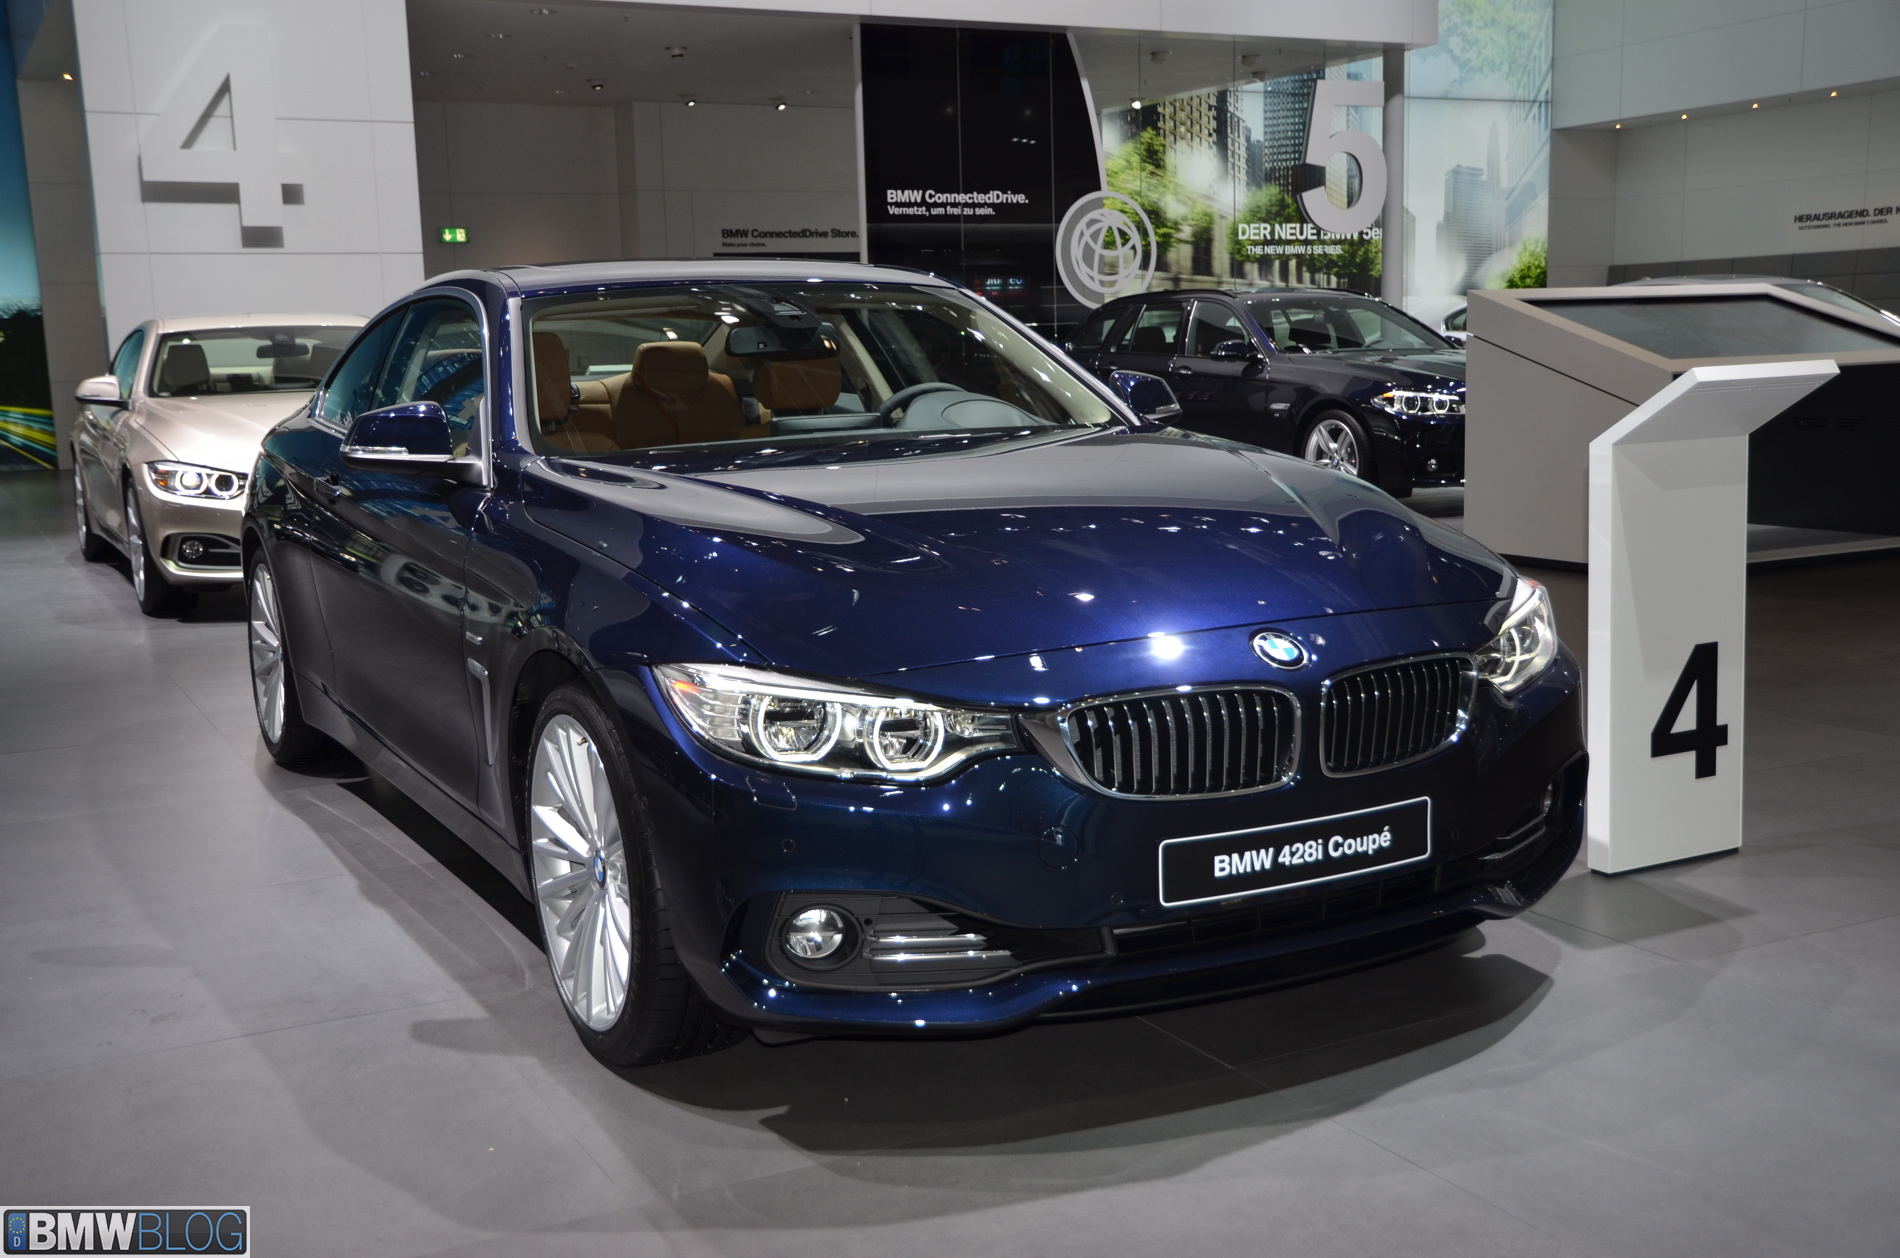 BMW 4 series 428i 2013 photo - 6